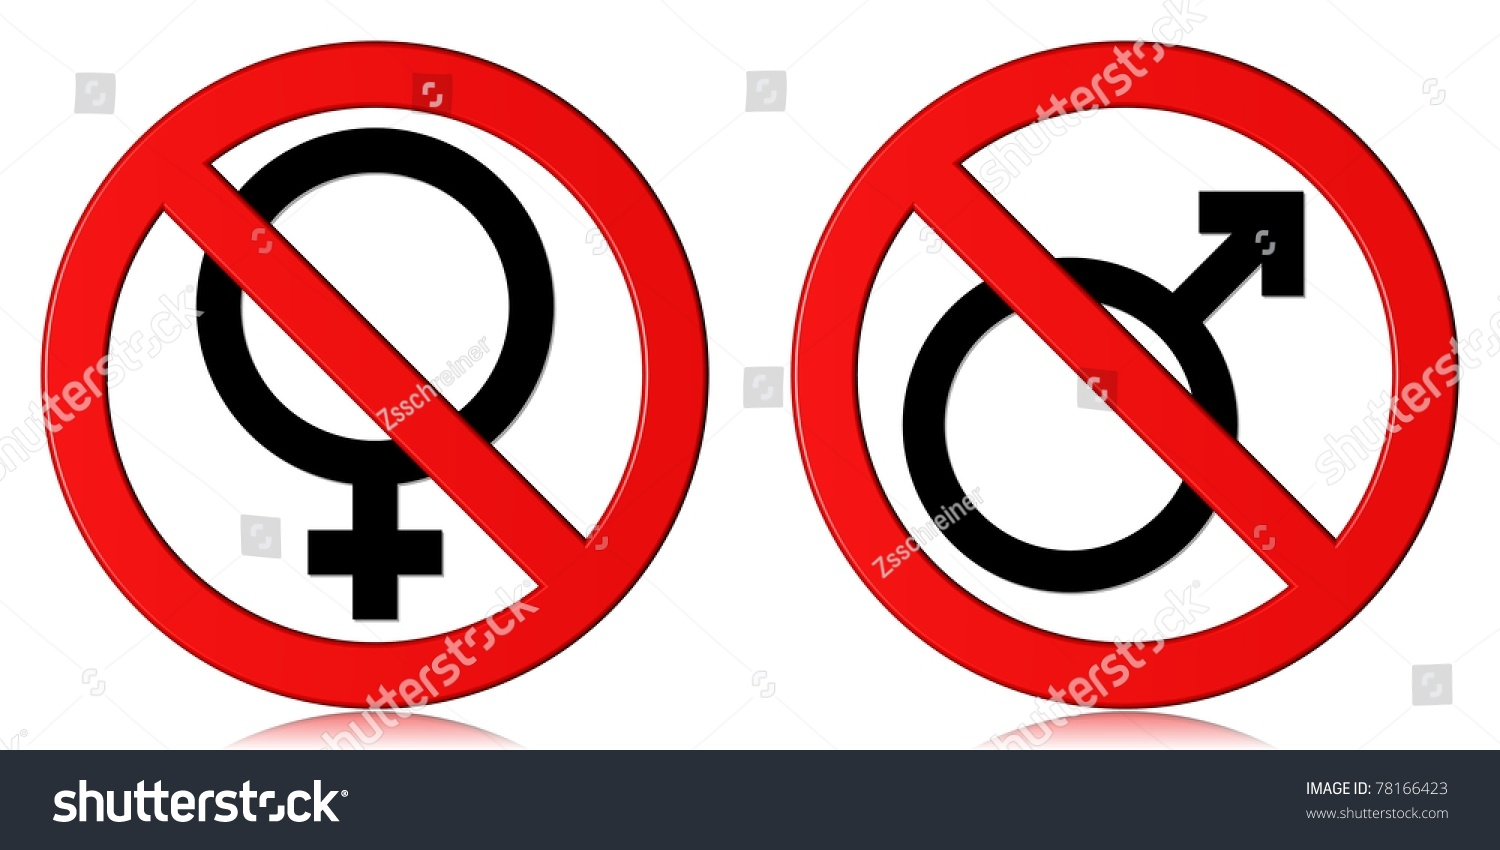 stock-photo--d-illustration-of-no-entry-sign-for-female-and-male-78166423.jpg